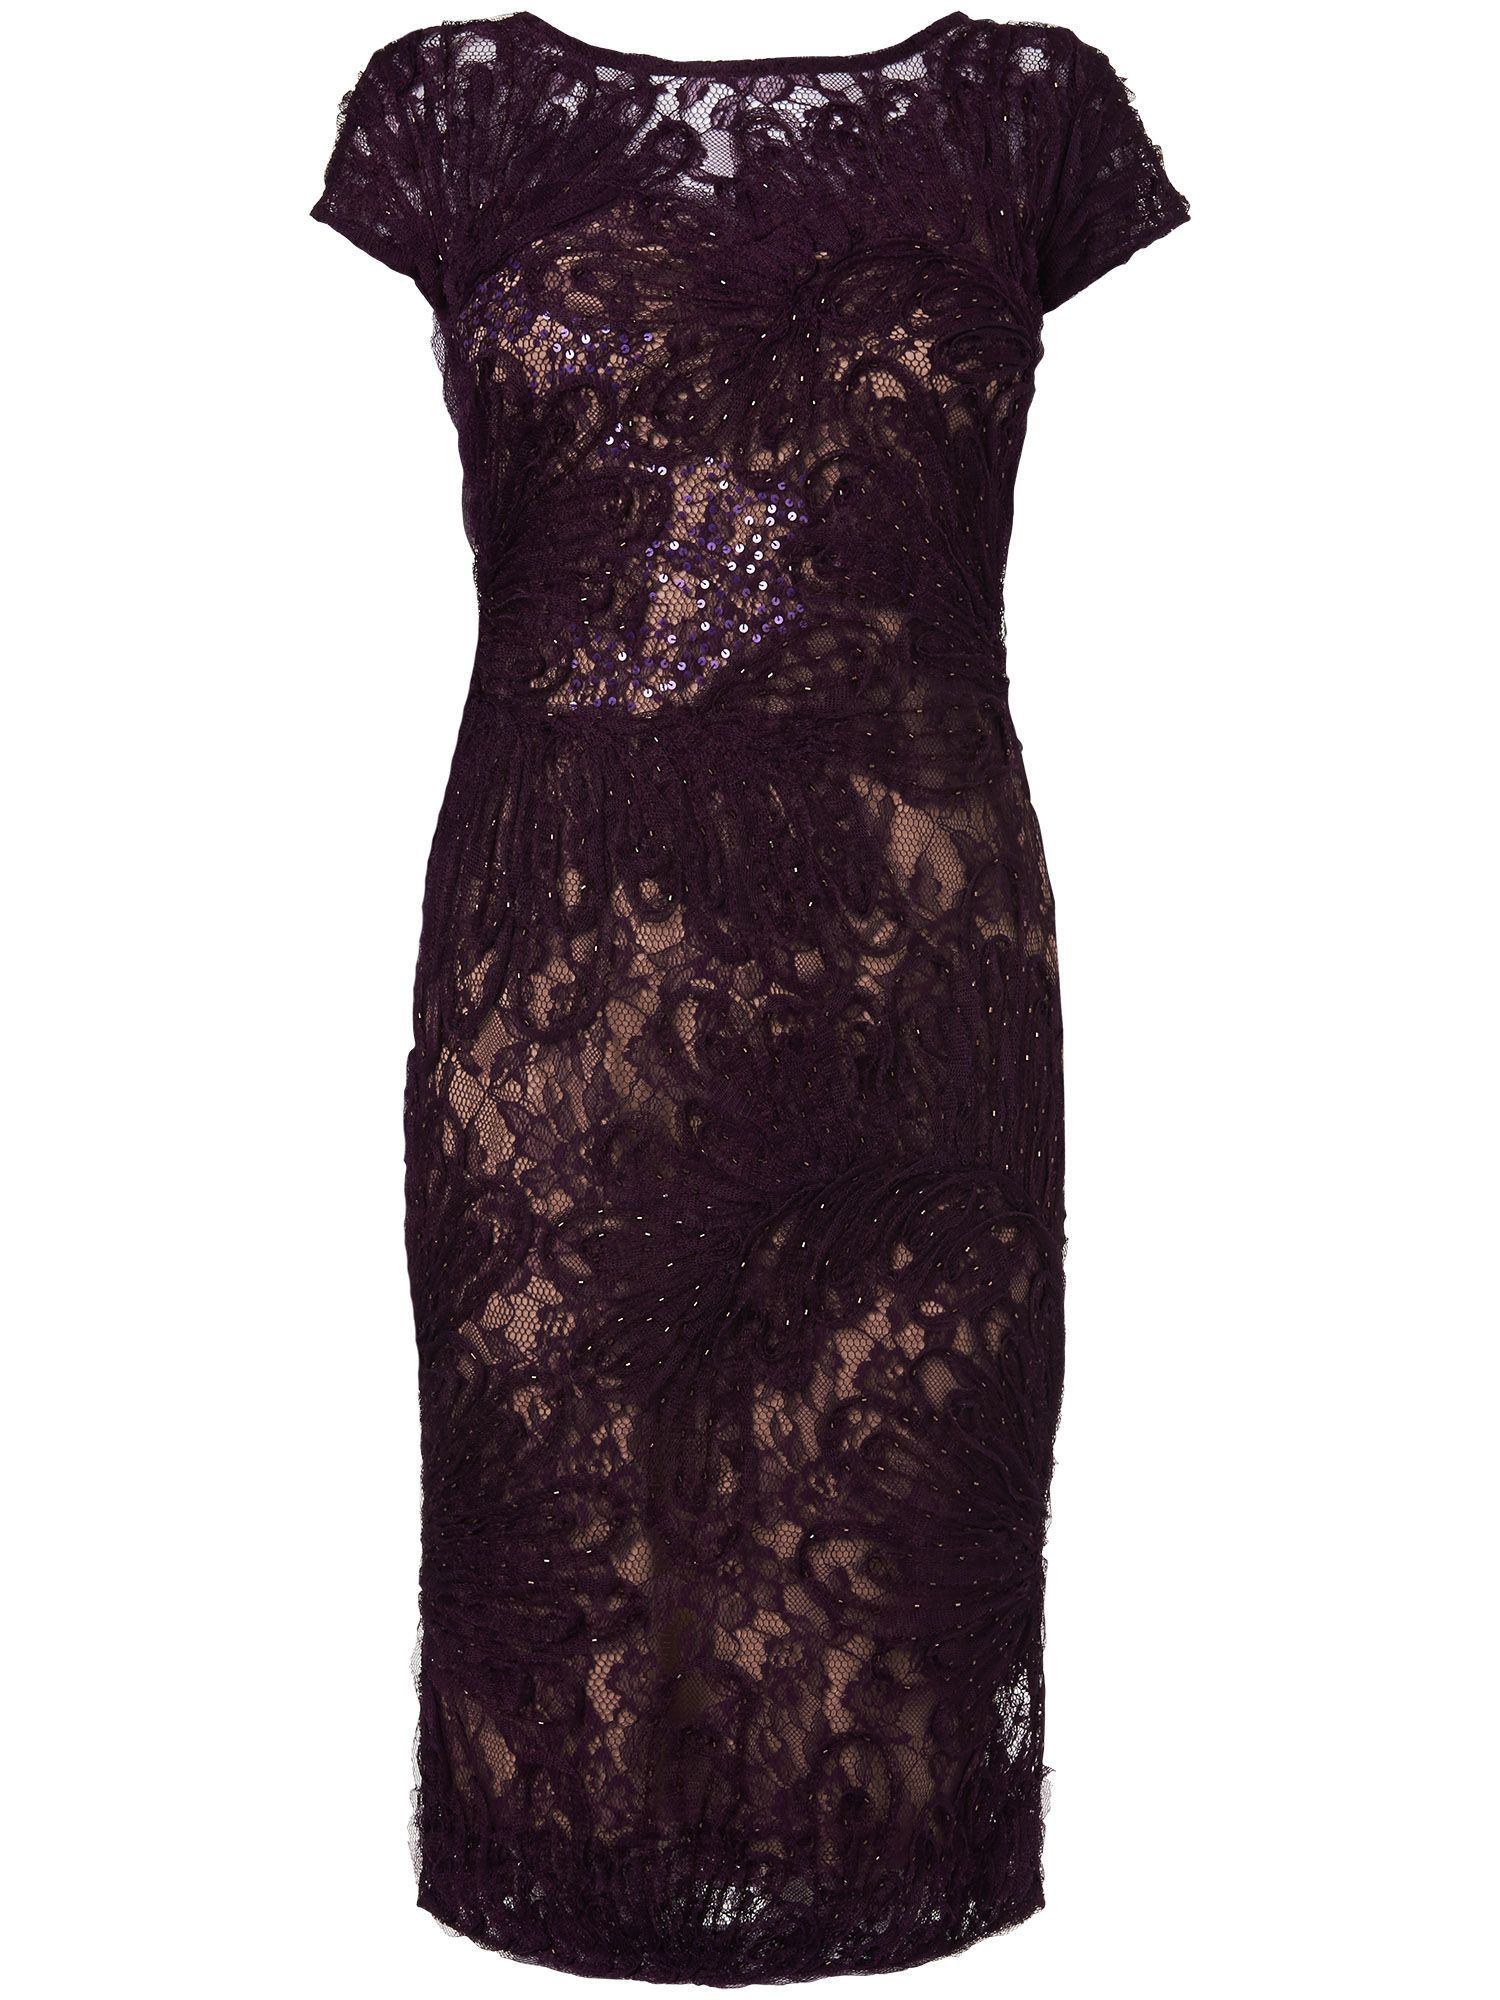 Phase Eight Gianna lace dress Purple  Vin  Pinterest  Purple